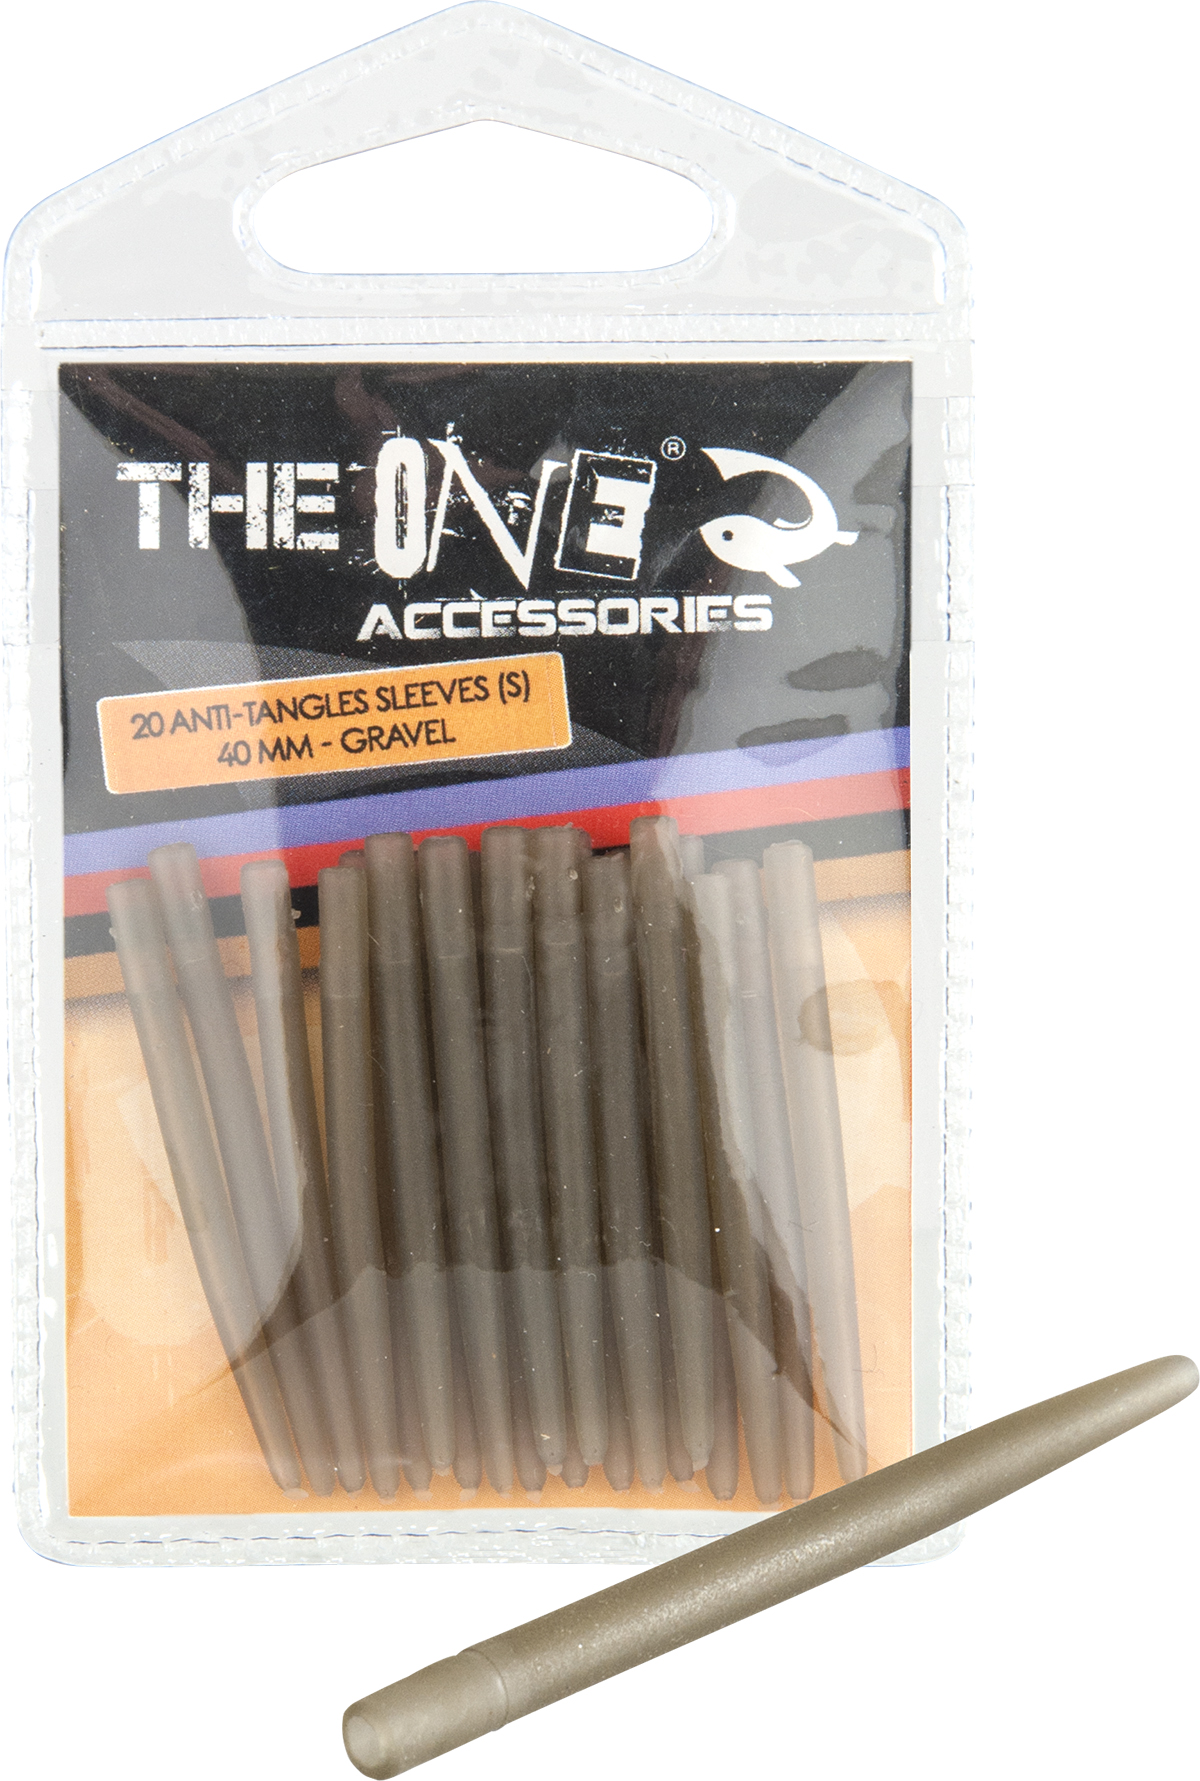 CONURI THE ONE ANTI-TANGLES SLEEVES 40mm GREVEL 20db - 79040042